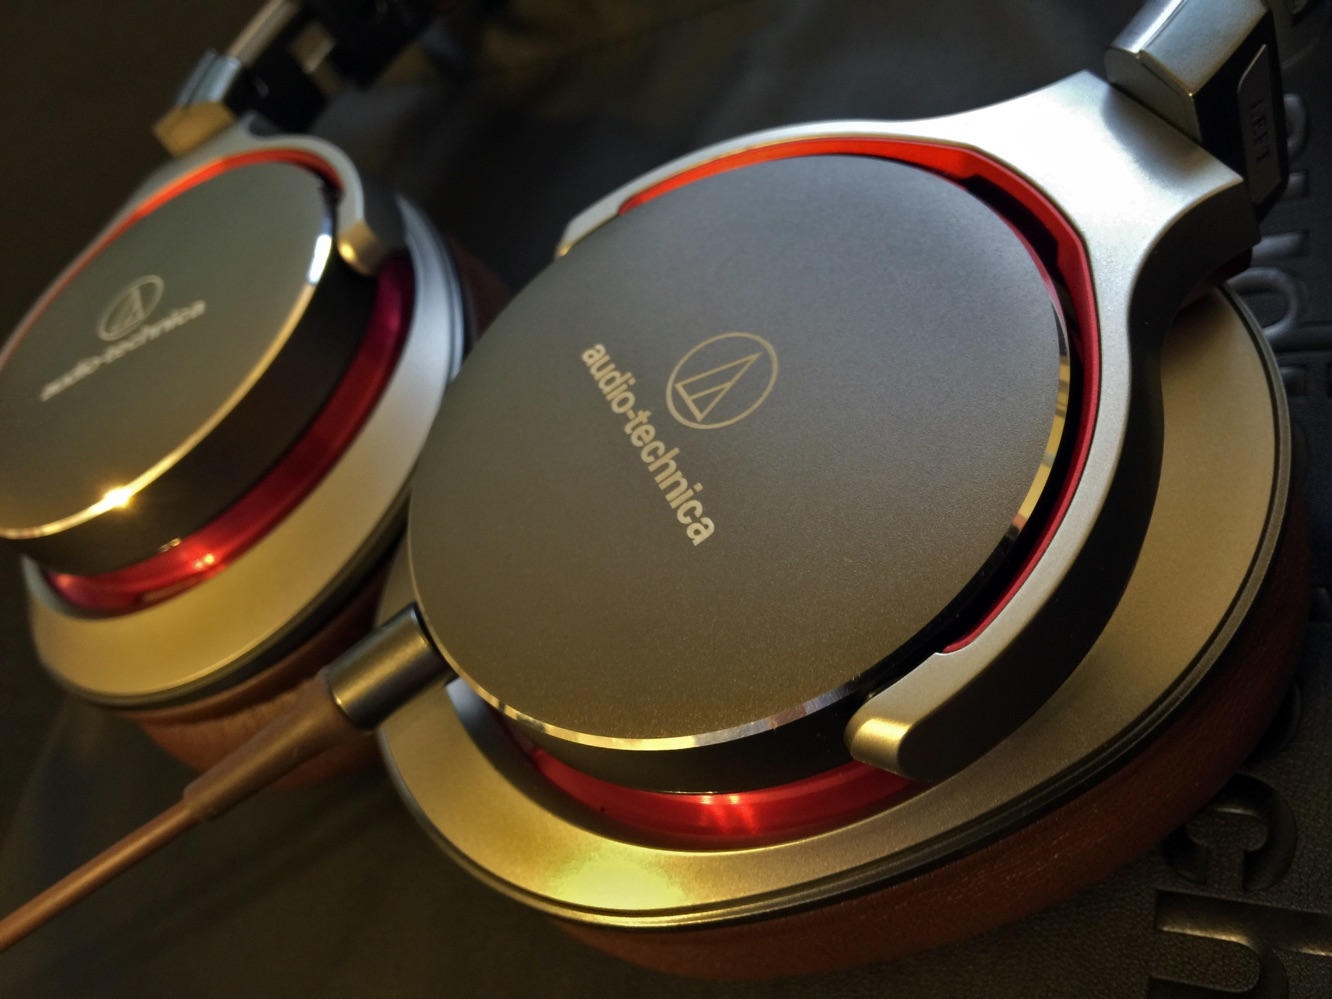 Review: Audio-Technica ATH-MSR7 SonicPro Over-Ear Headphones 4